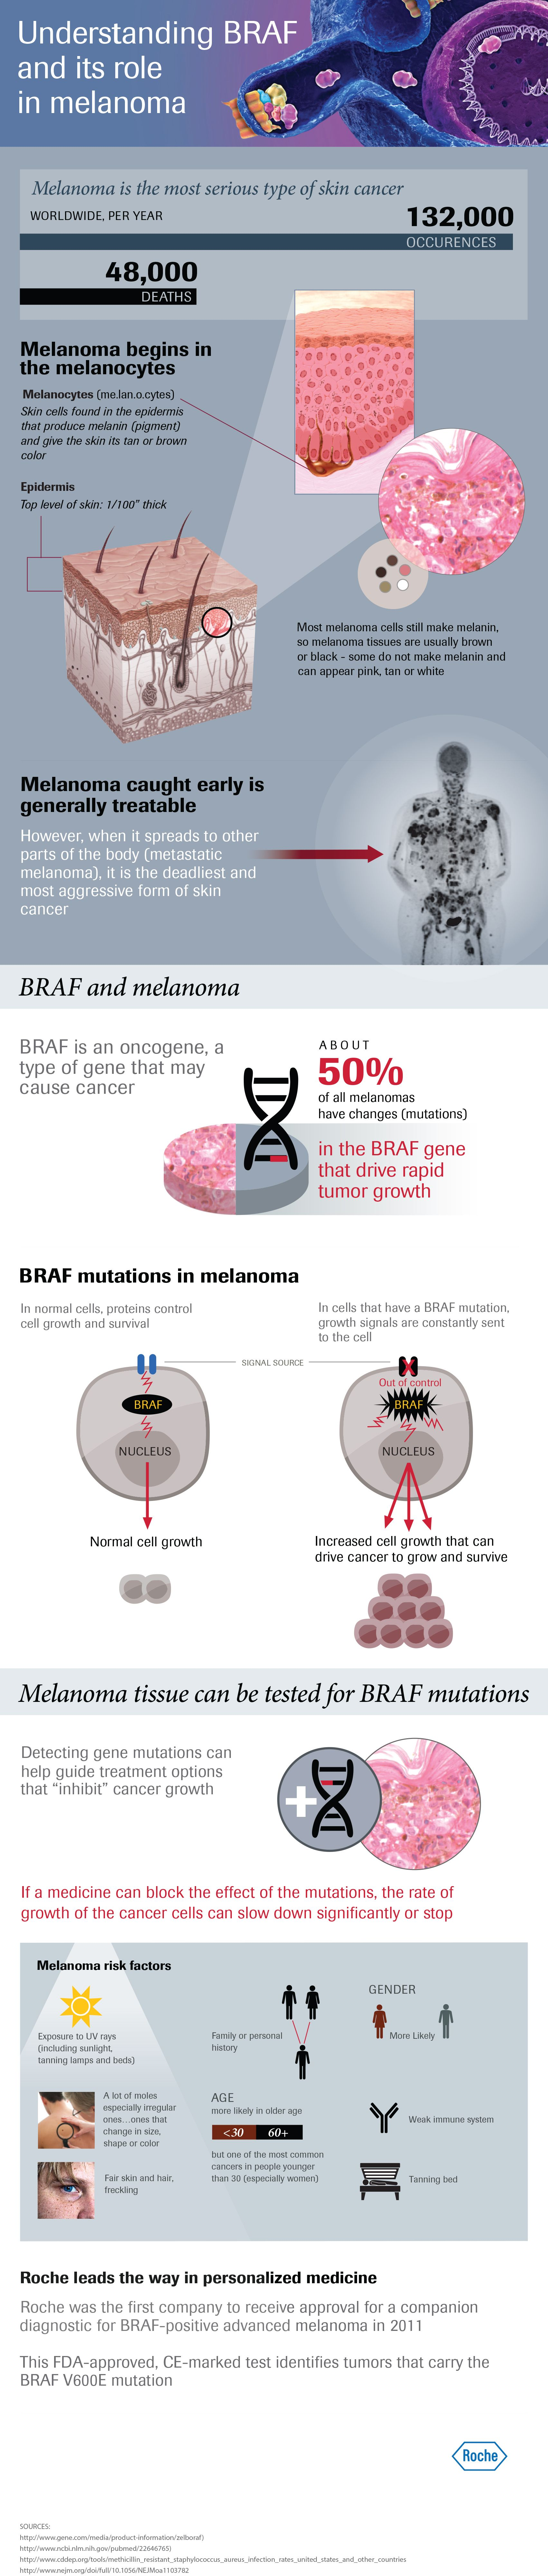 Infographic - Understanding BRAF and its role in melanoma